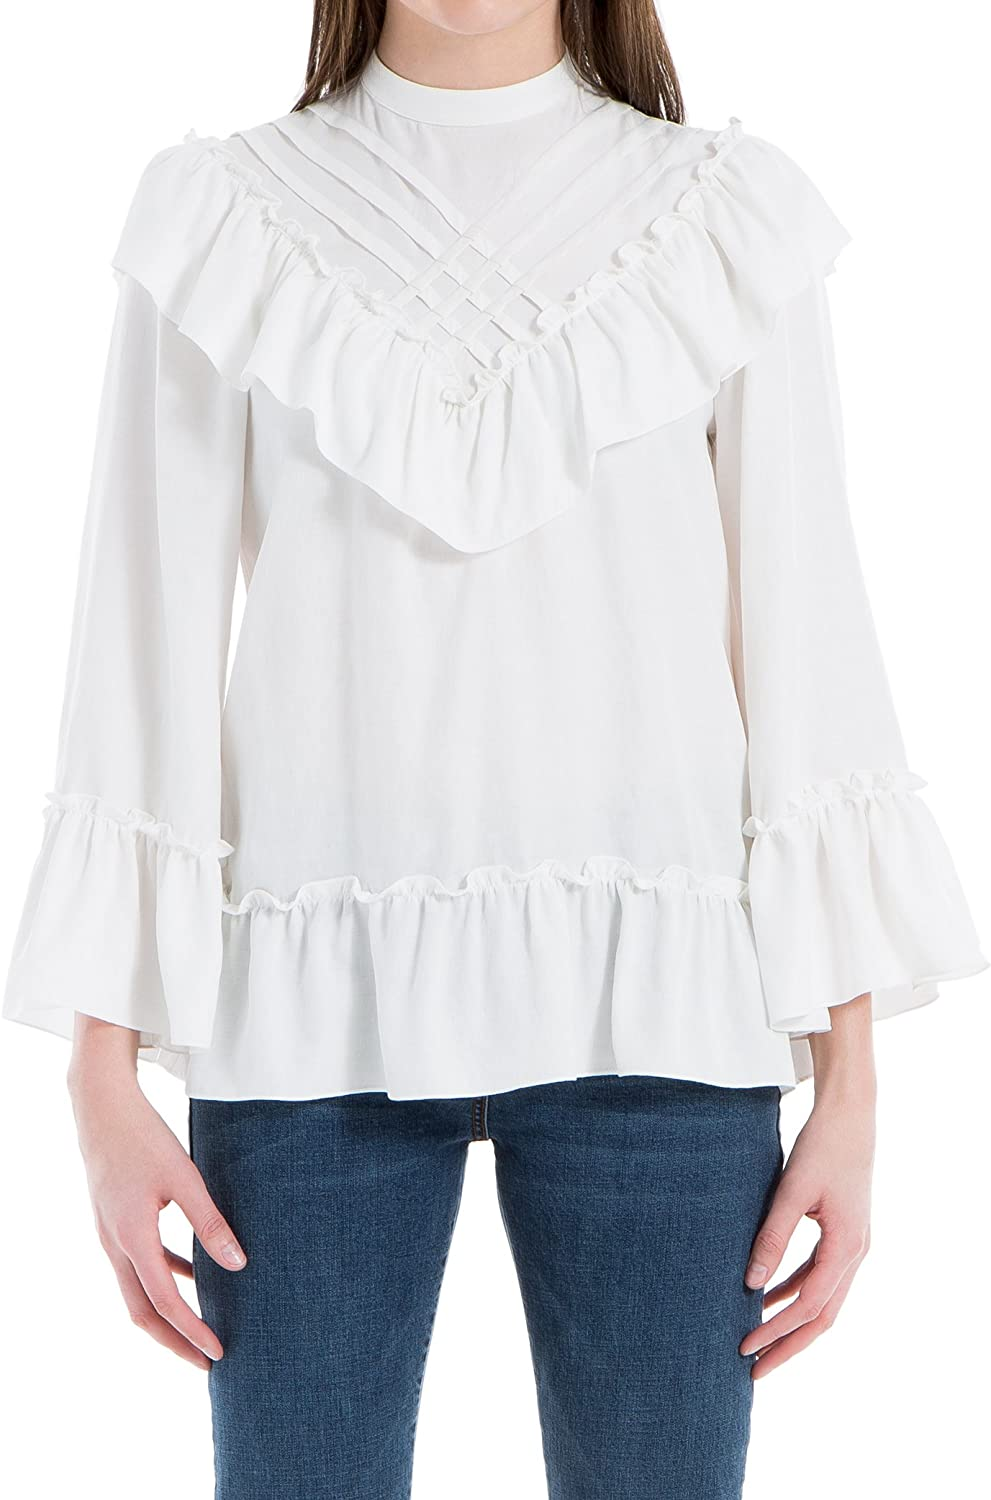 Ranking TOP4 Ruffled Limited Special Price Top